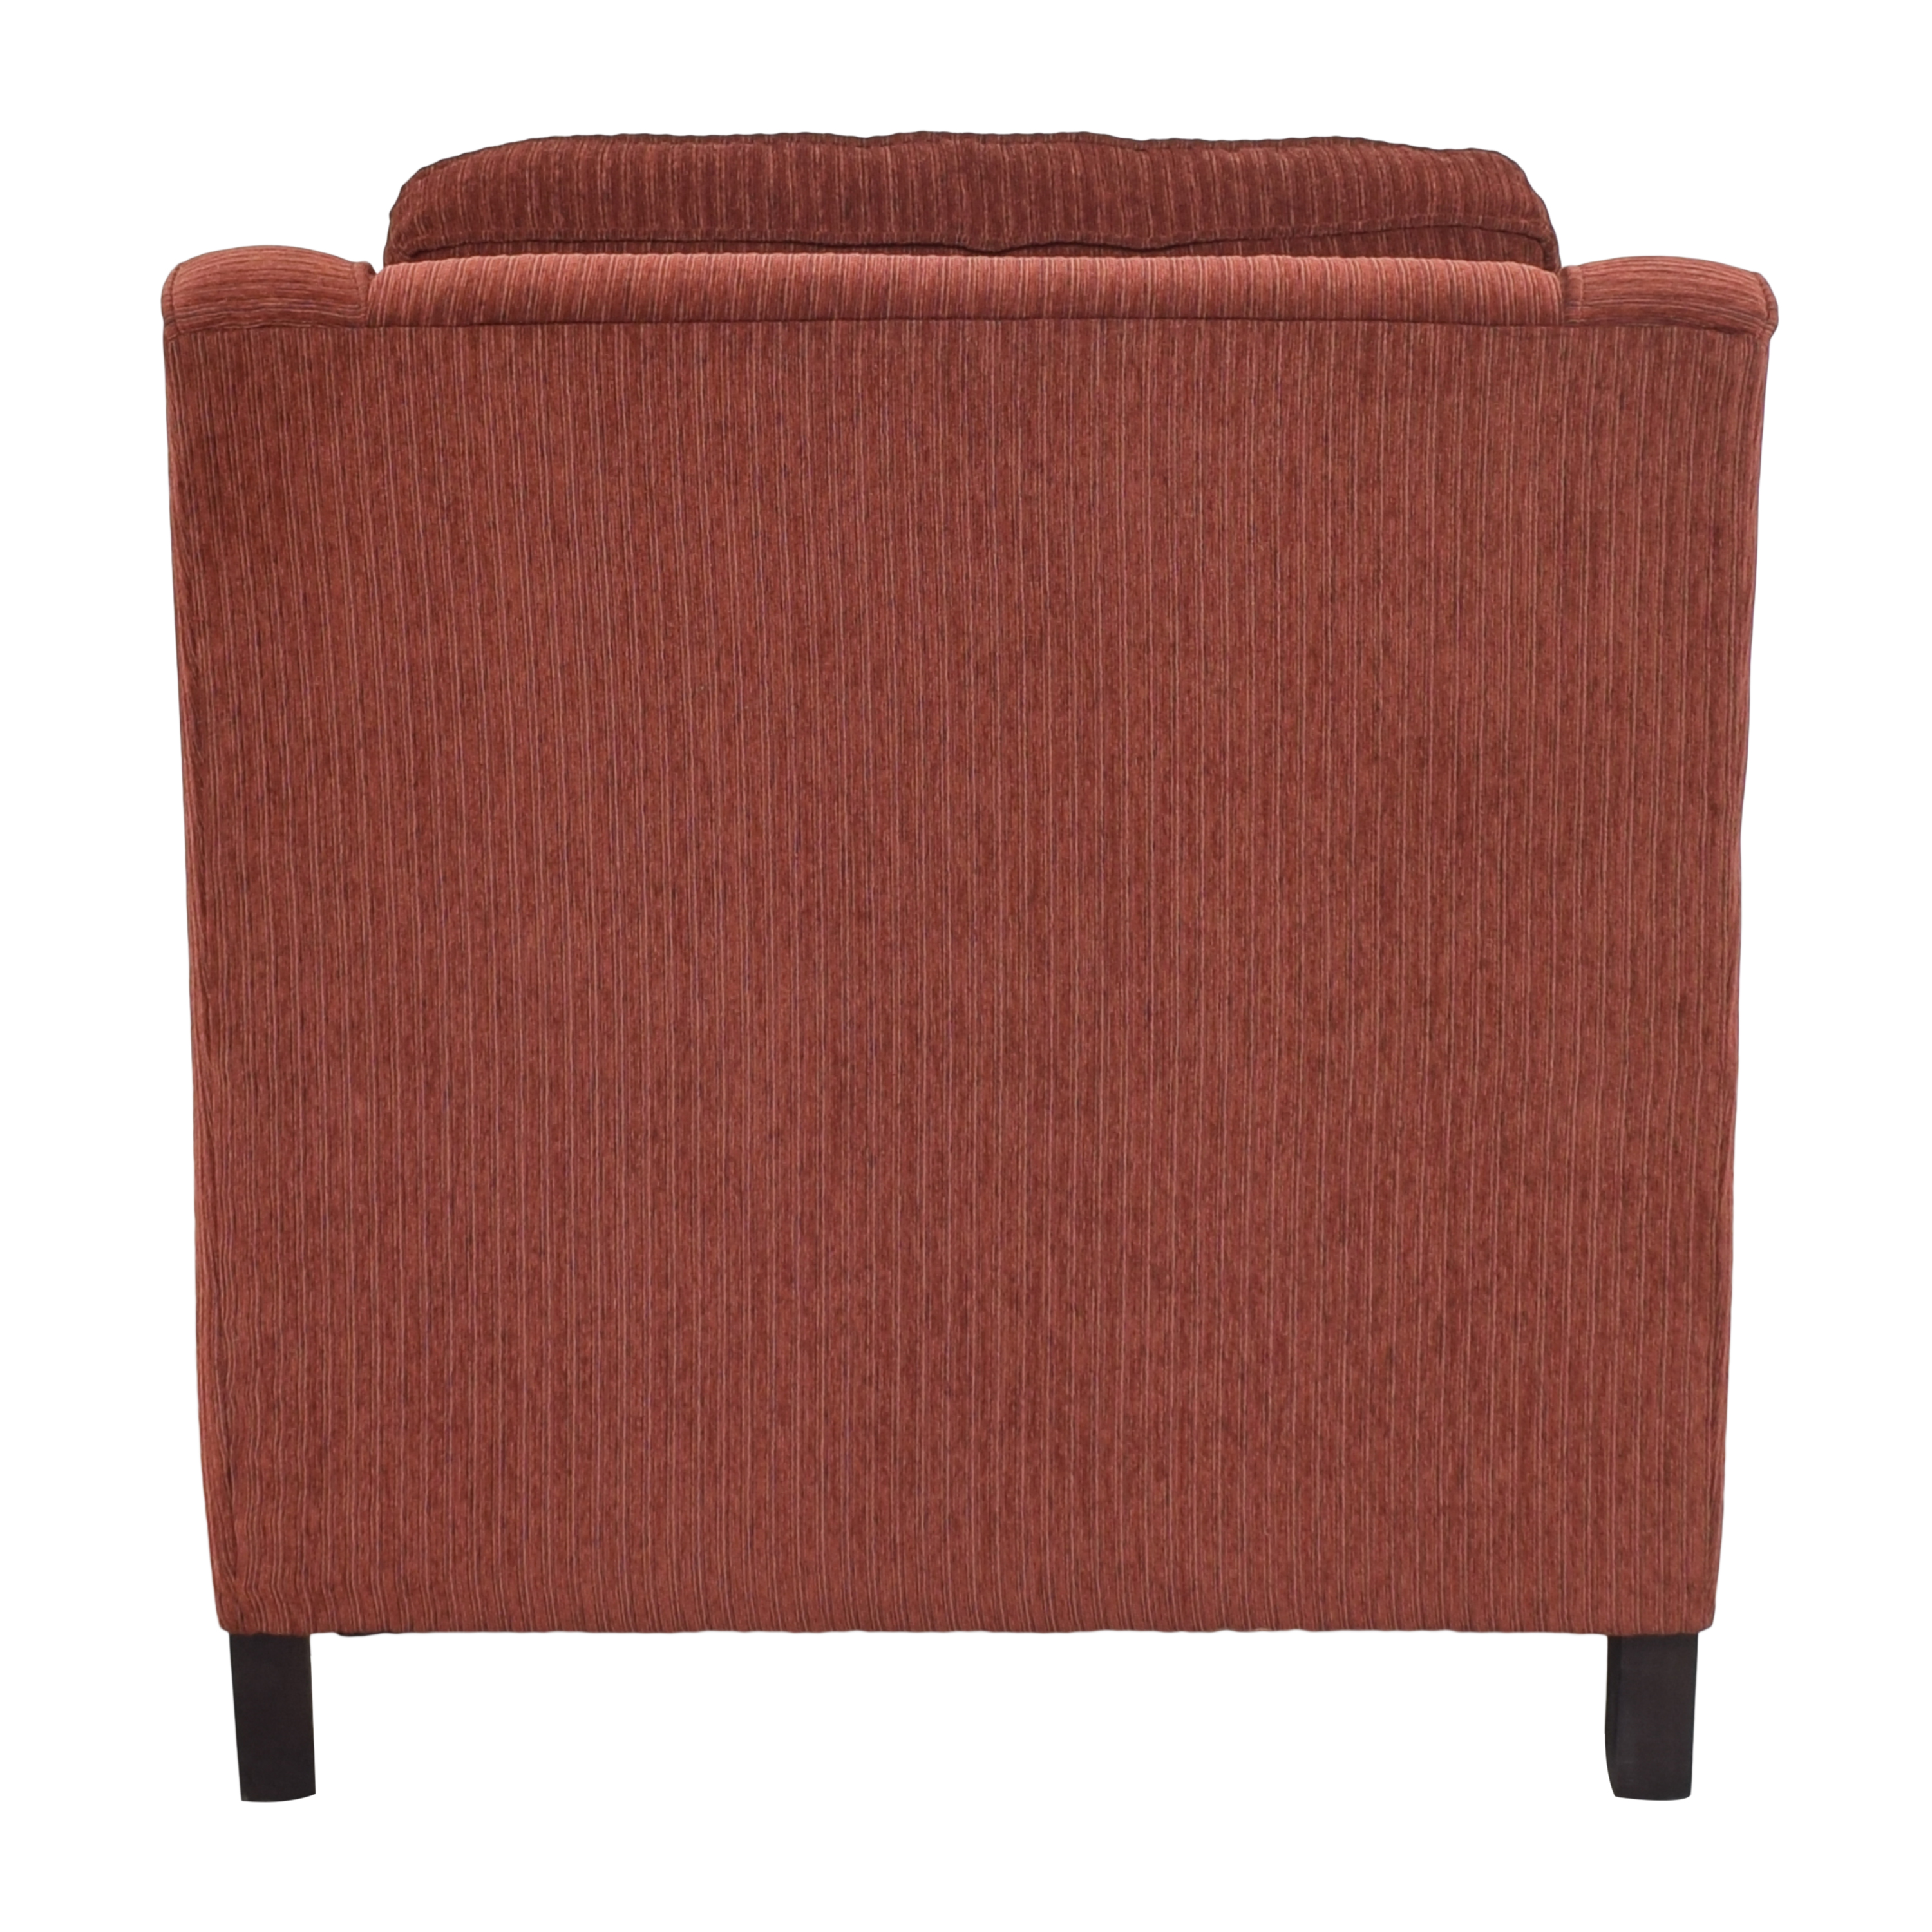 Bassett Furniture Corinna Accent Chair with Ottoman / Chairs